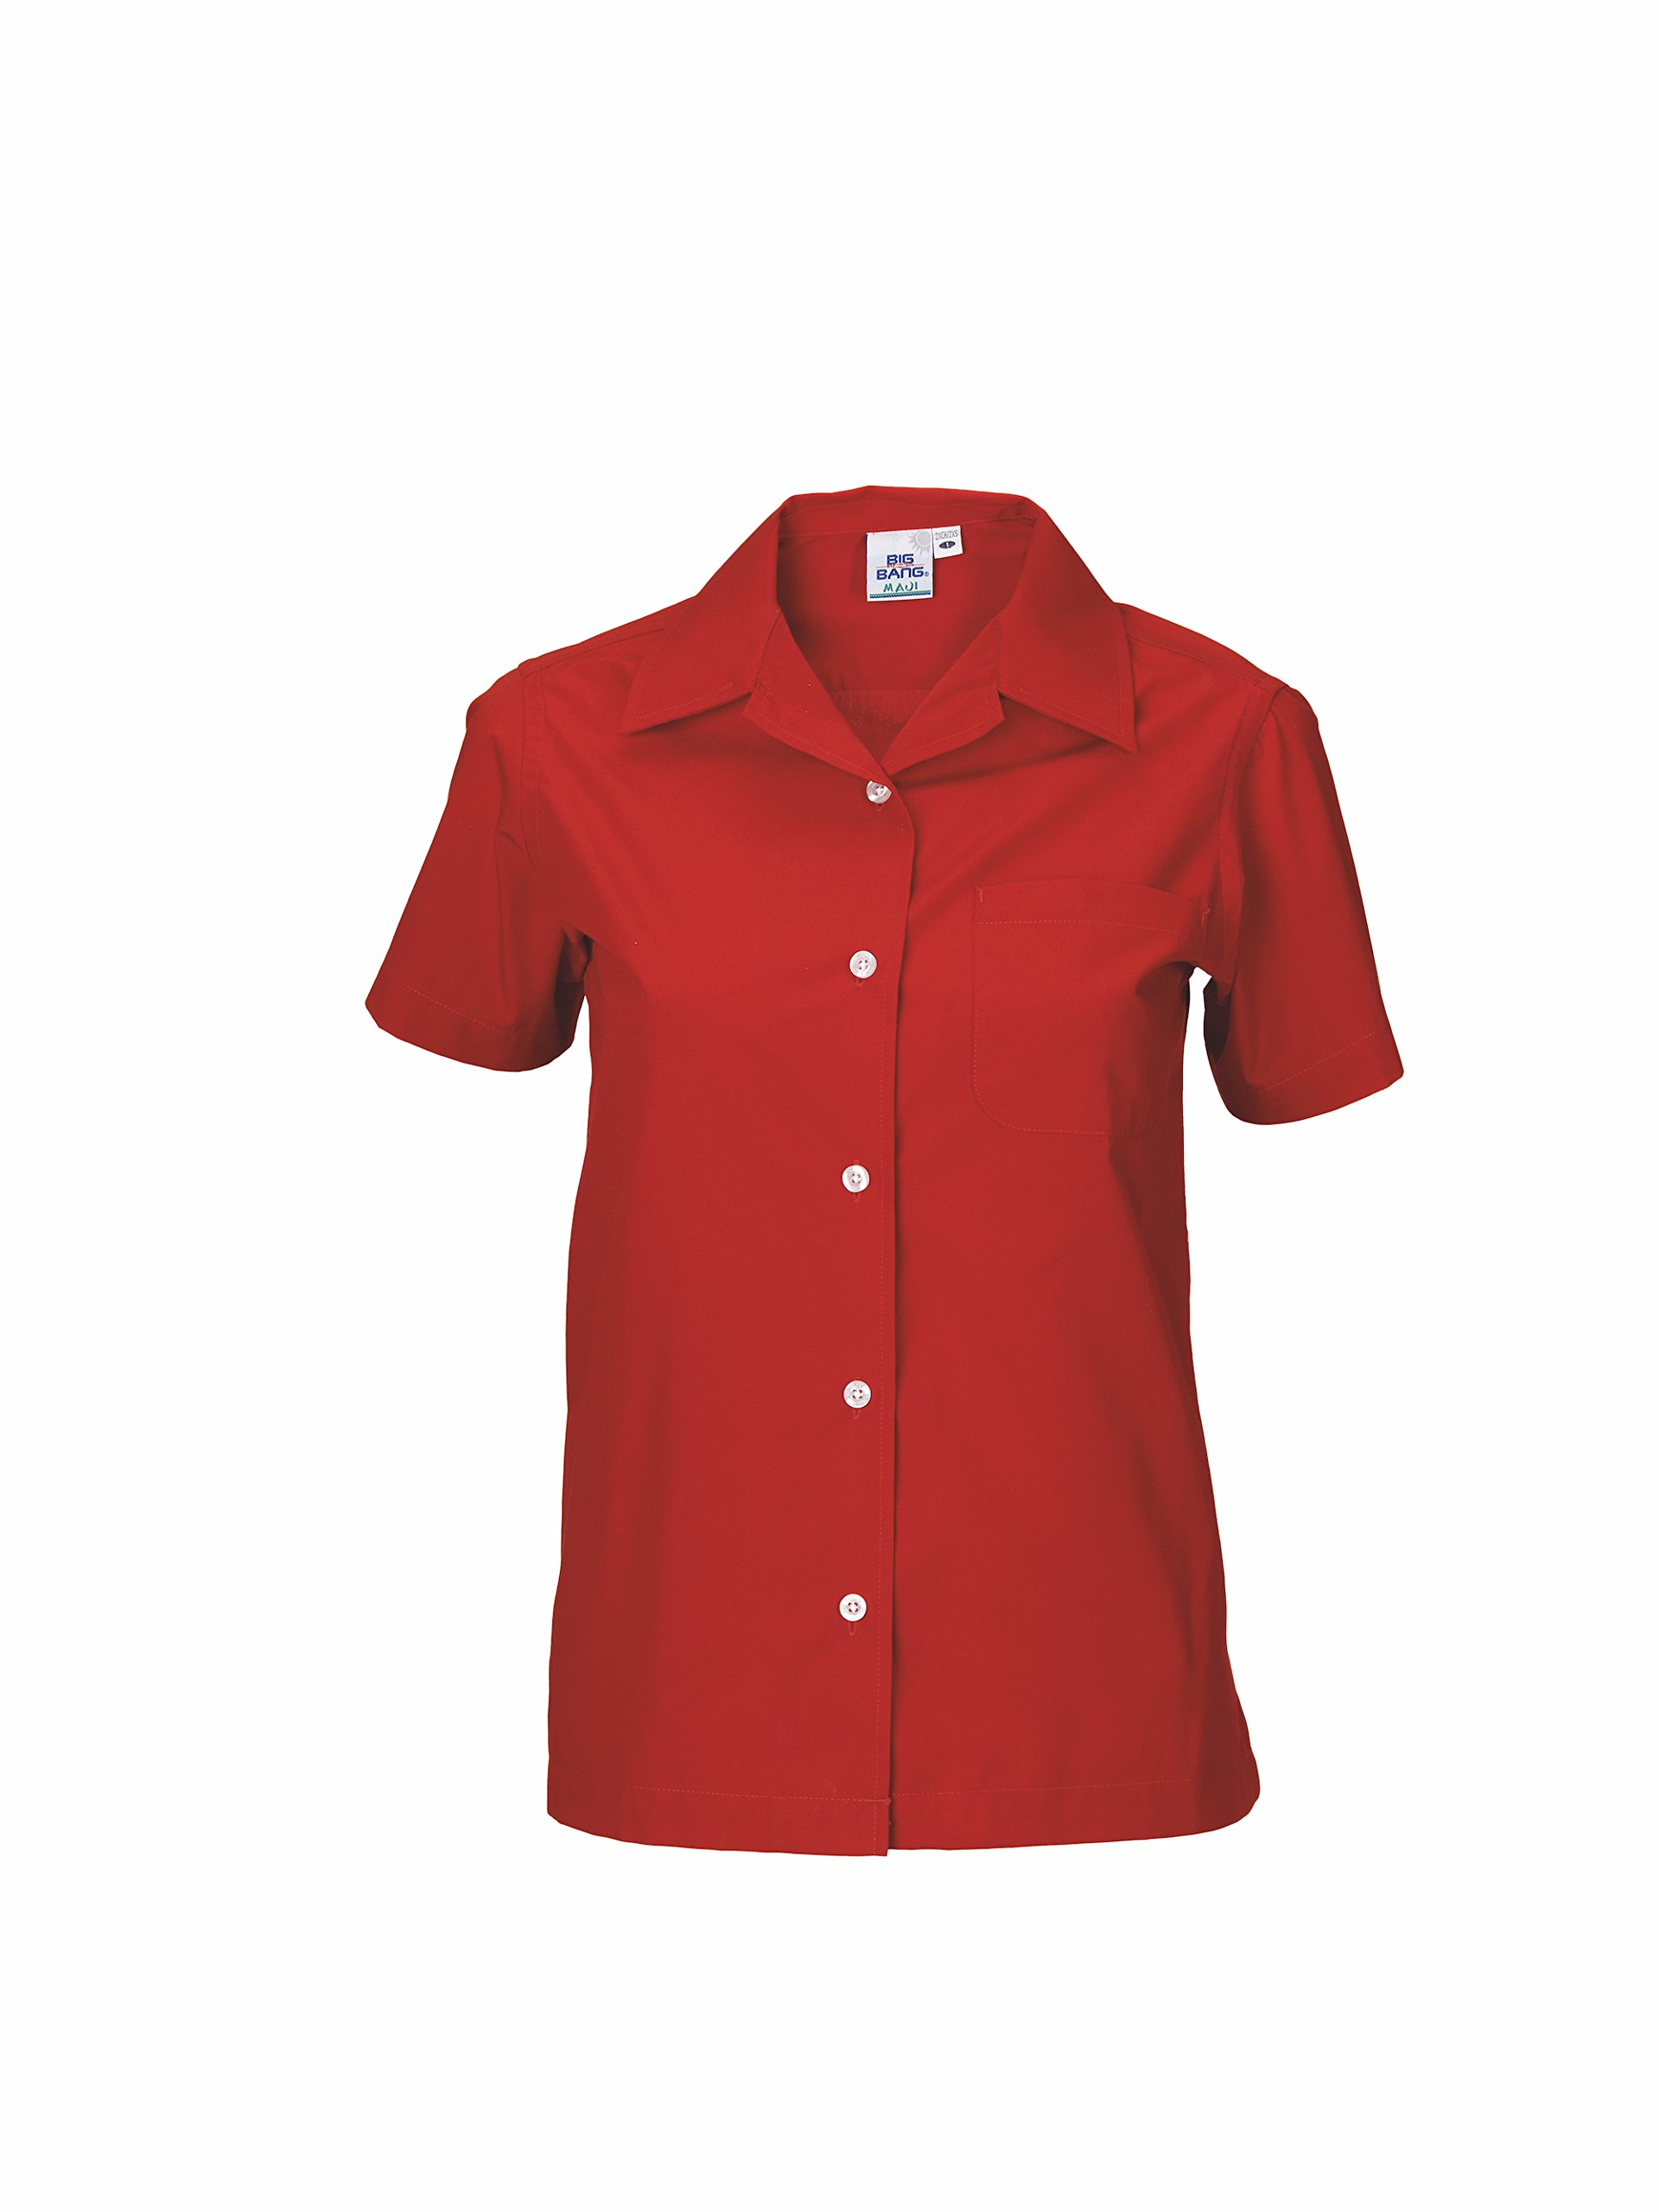 SKOOL ZONE Maui Poplin Work Utility Button-Down Shirt Solid Color - Uniform Business Embroider Ready (S Women, Red Short Sleeve) by SKOOL ZONE